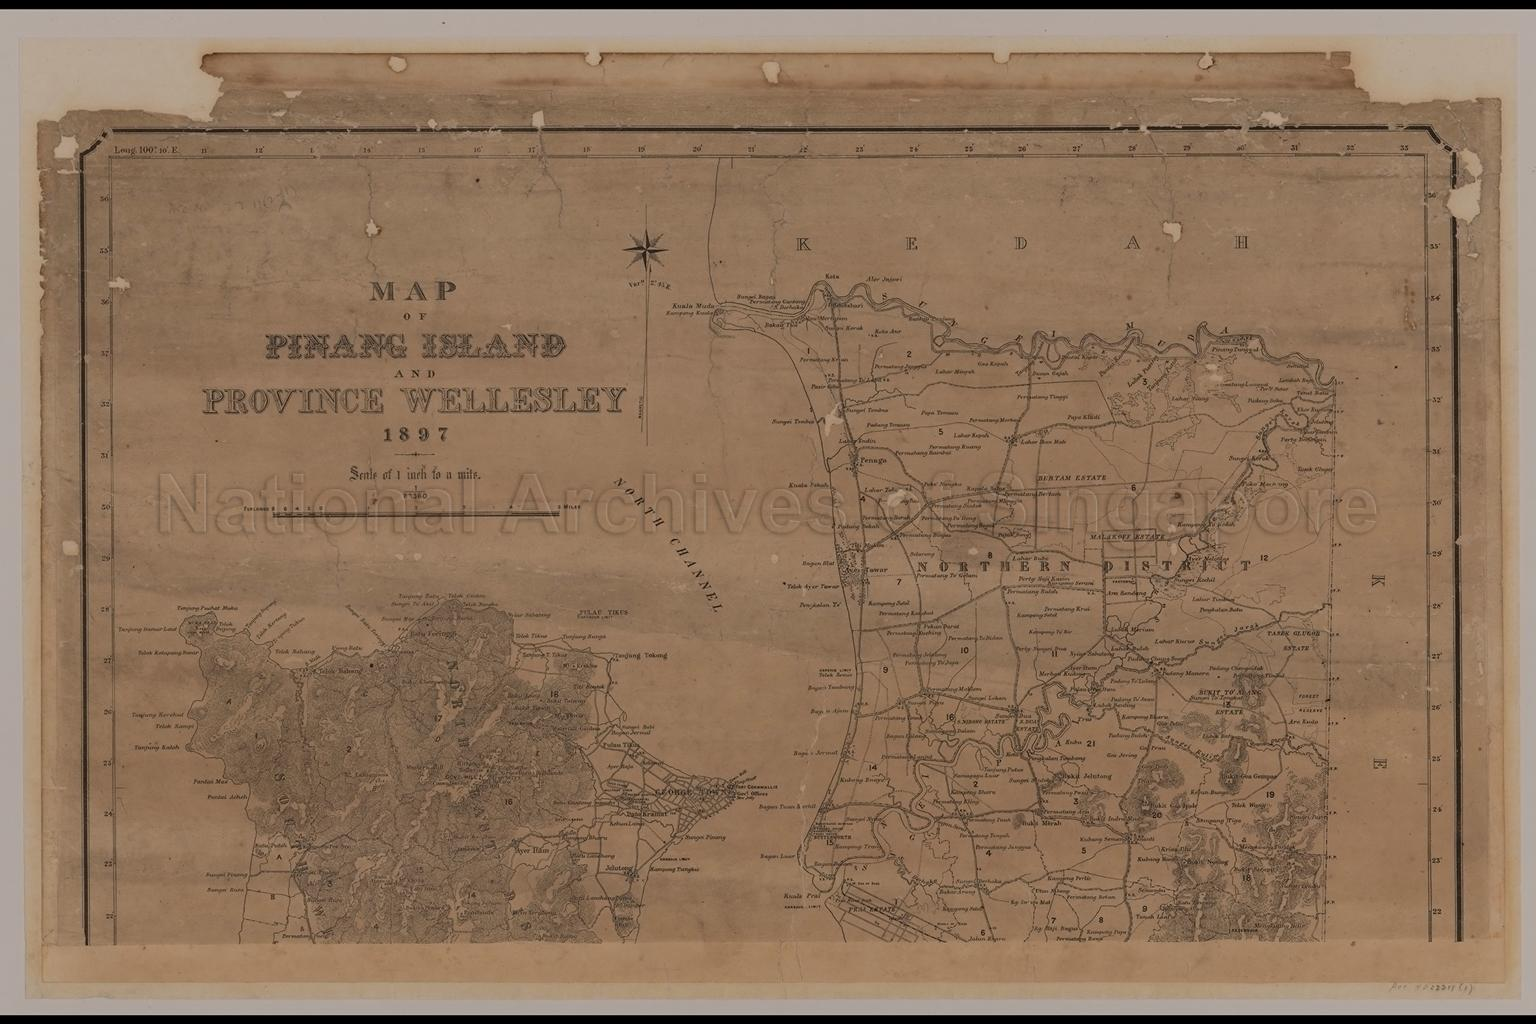 Map of Pinang Island and Province Wellesley,1897